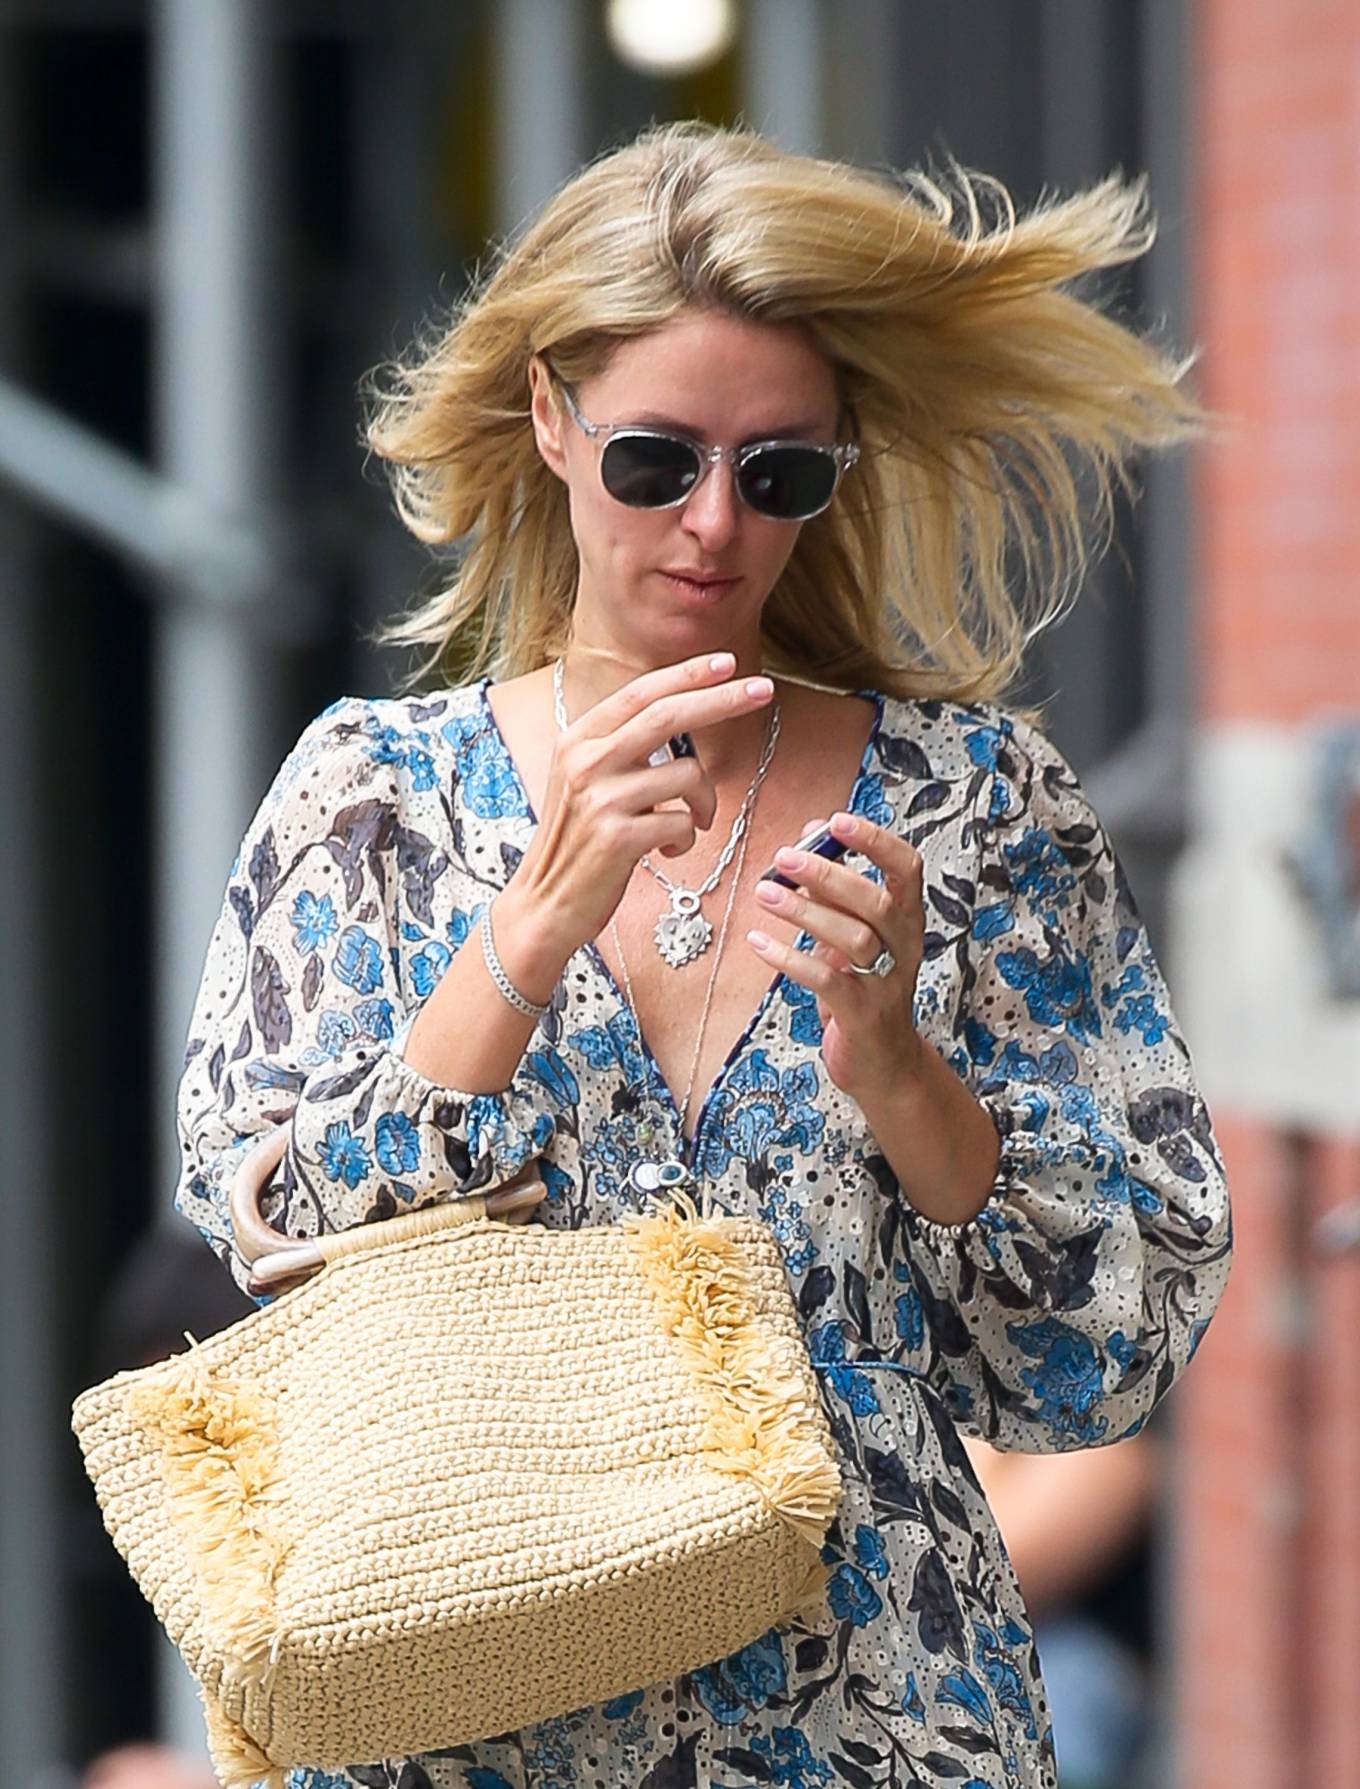 Nicky Hilton - Wears a floral dress in New York